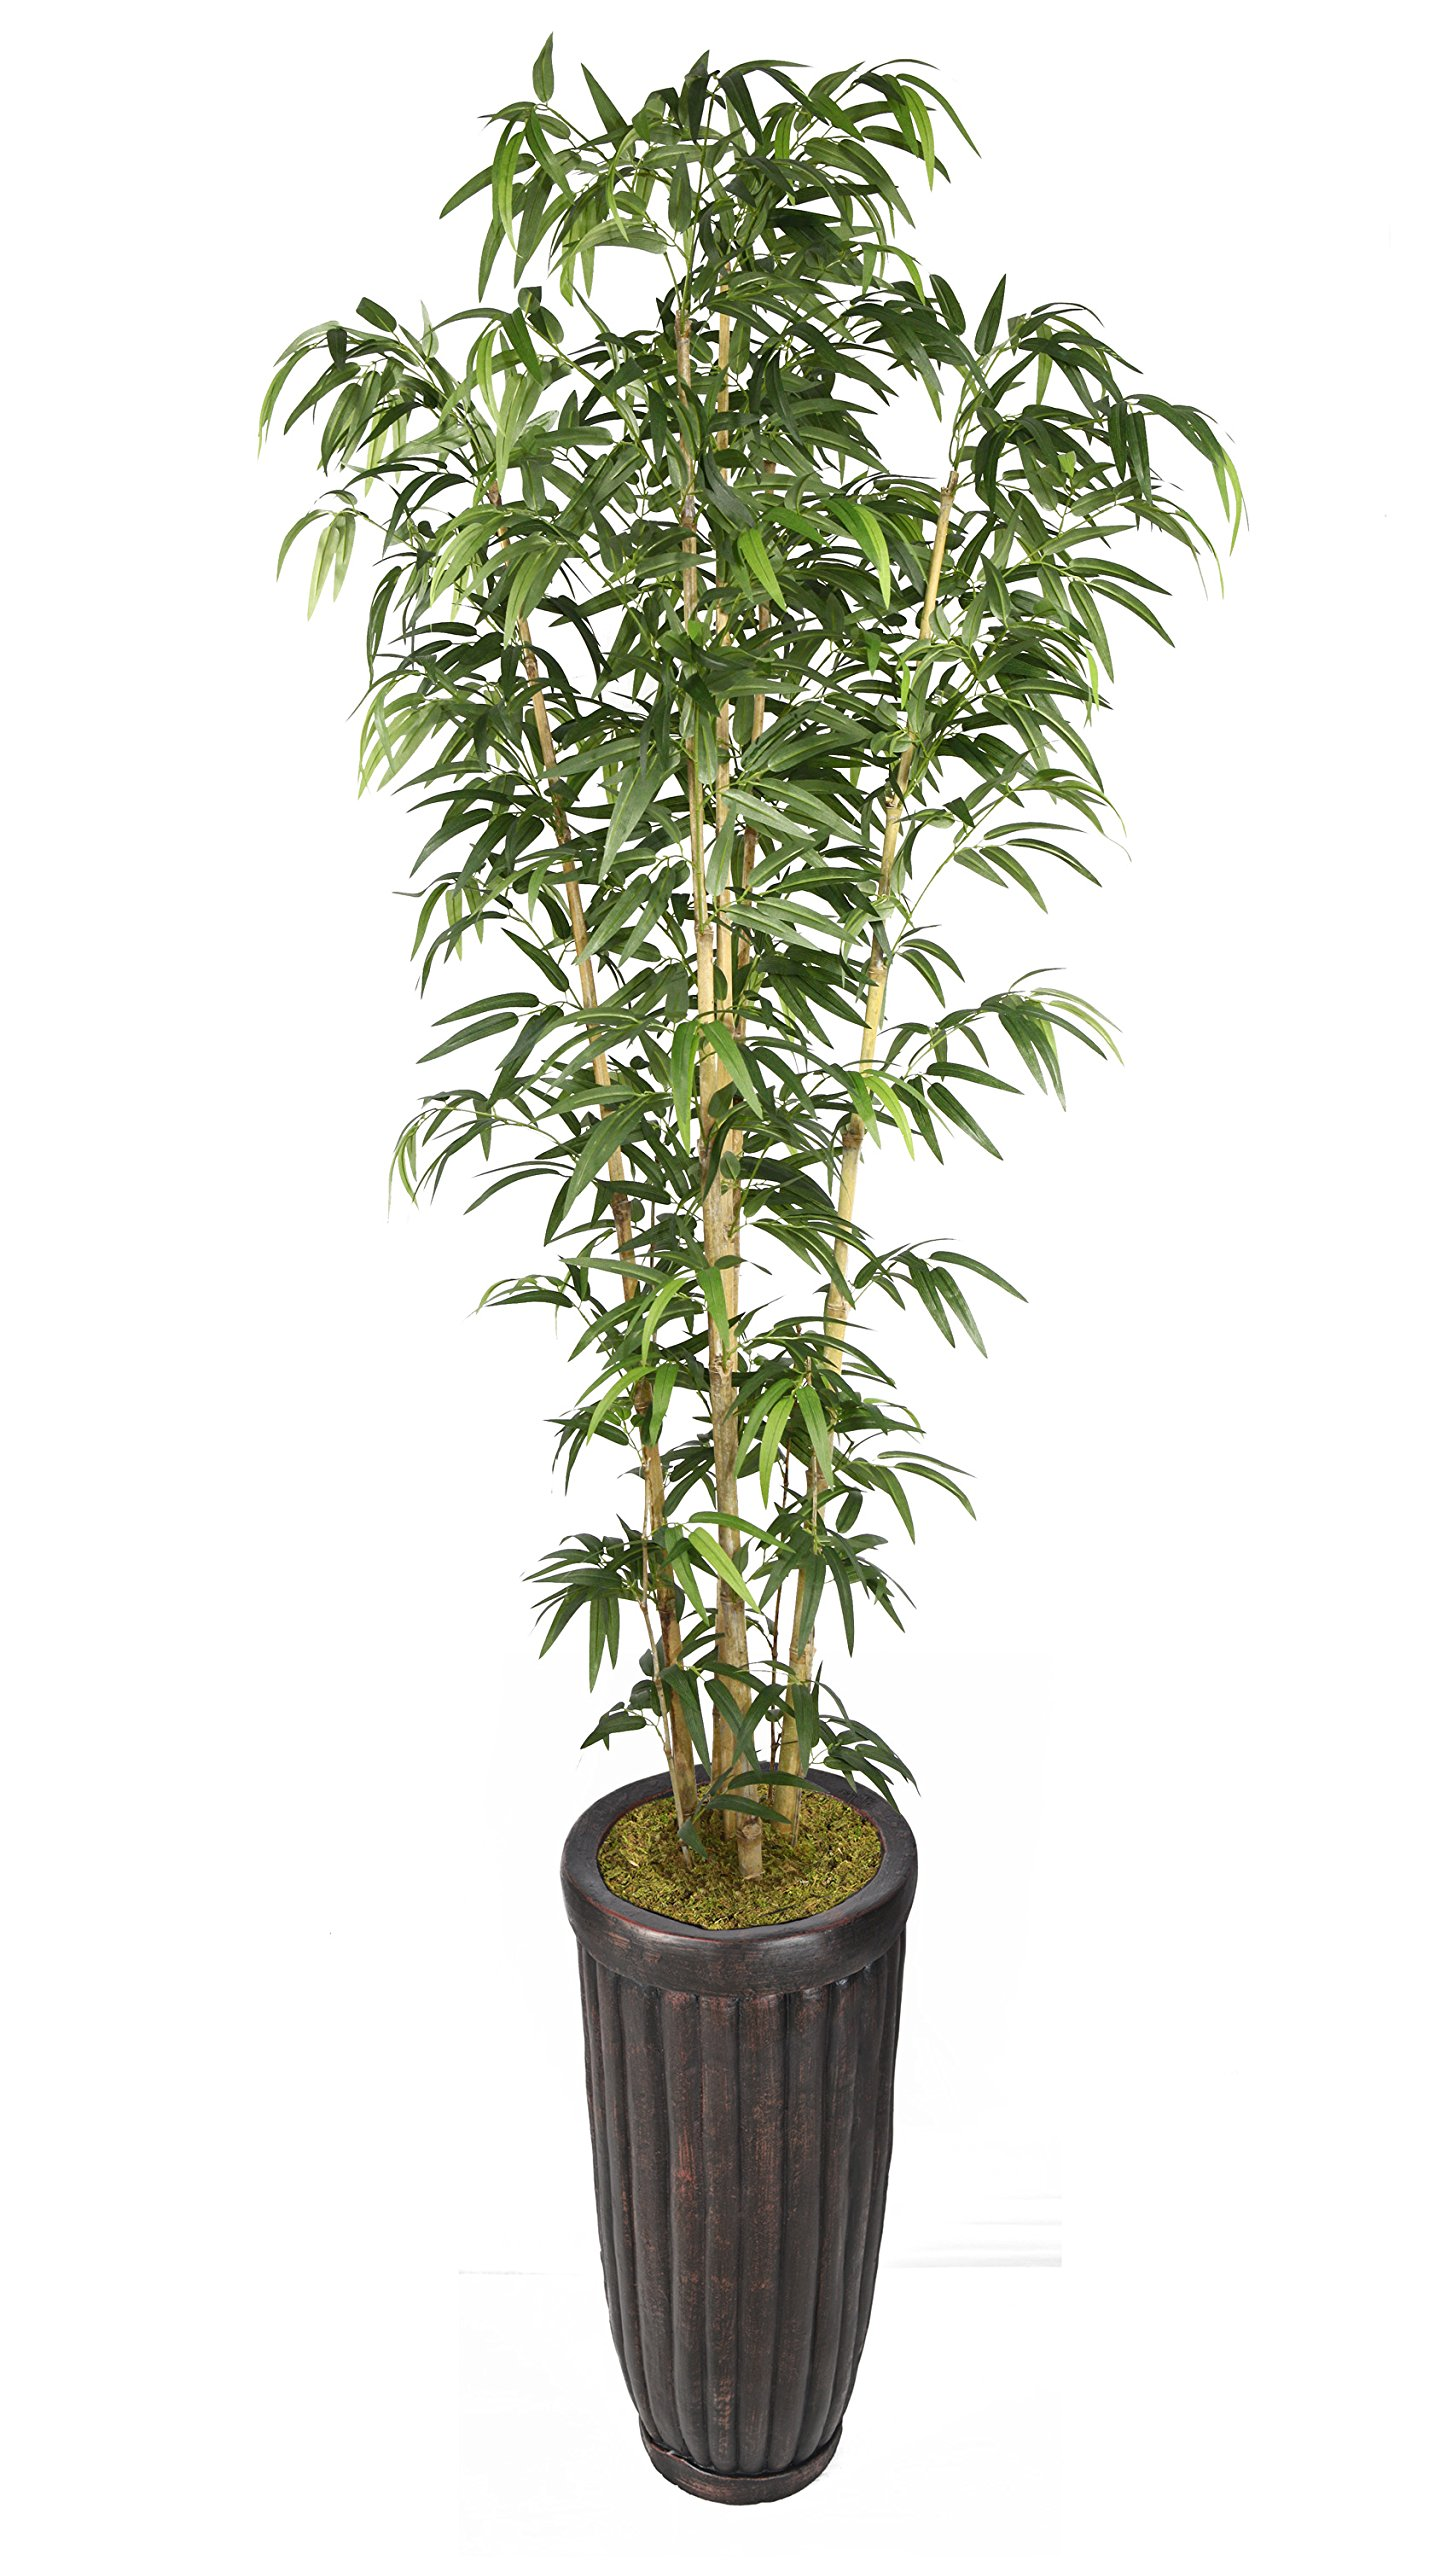 Vintage Home VHX116214 93'' Bamboo Tree in Natural Poles in Planter Tree by Vintage Home (Image #1)